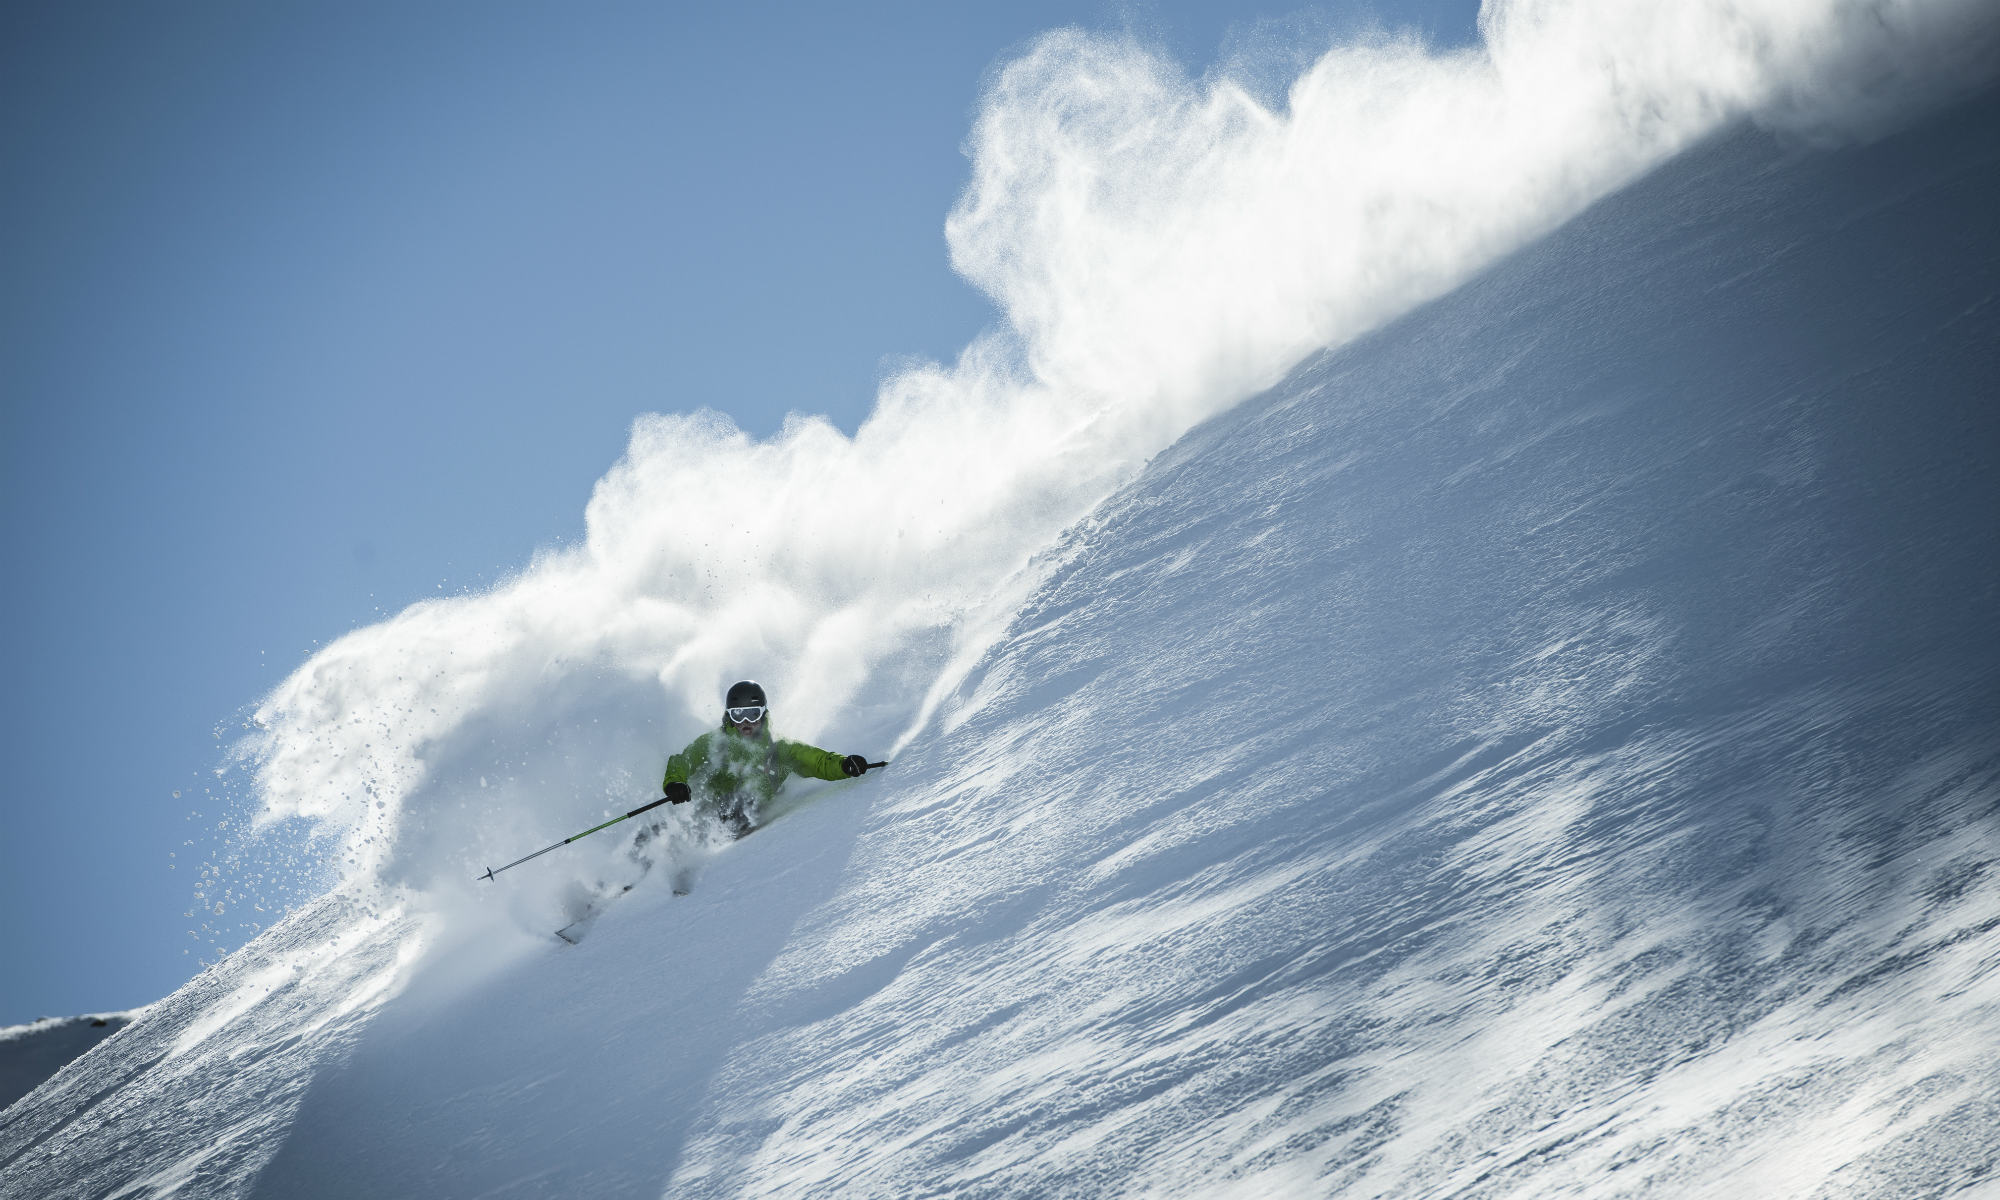 A deep snow skier gliding through the fresh powder snow.